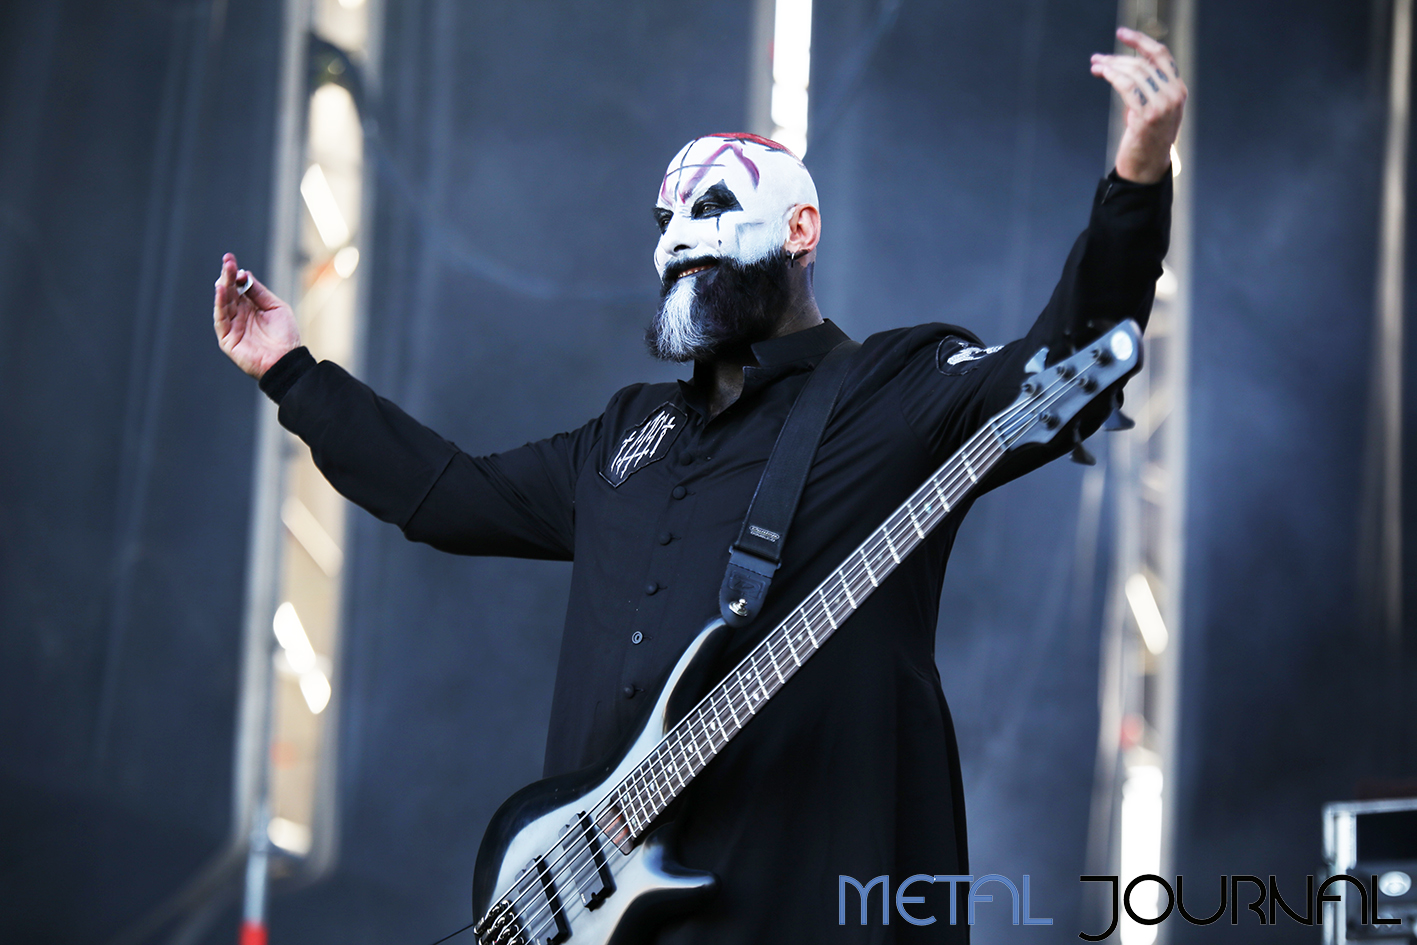 lacuna coil - leyendas del rock 2019 metal journal pic 6